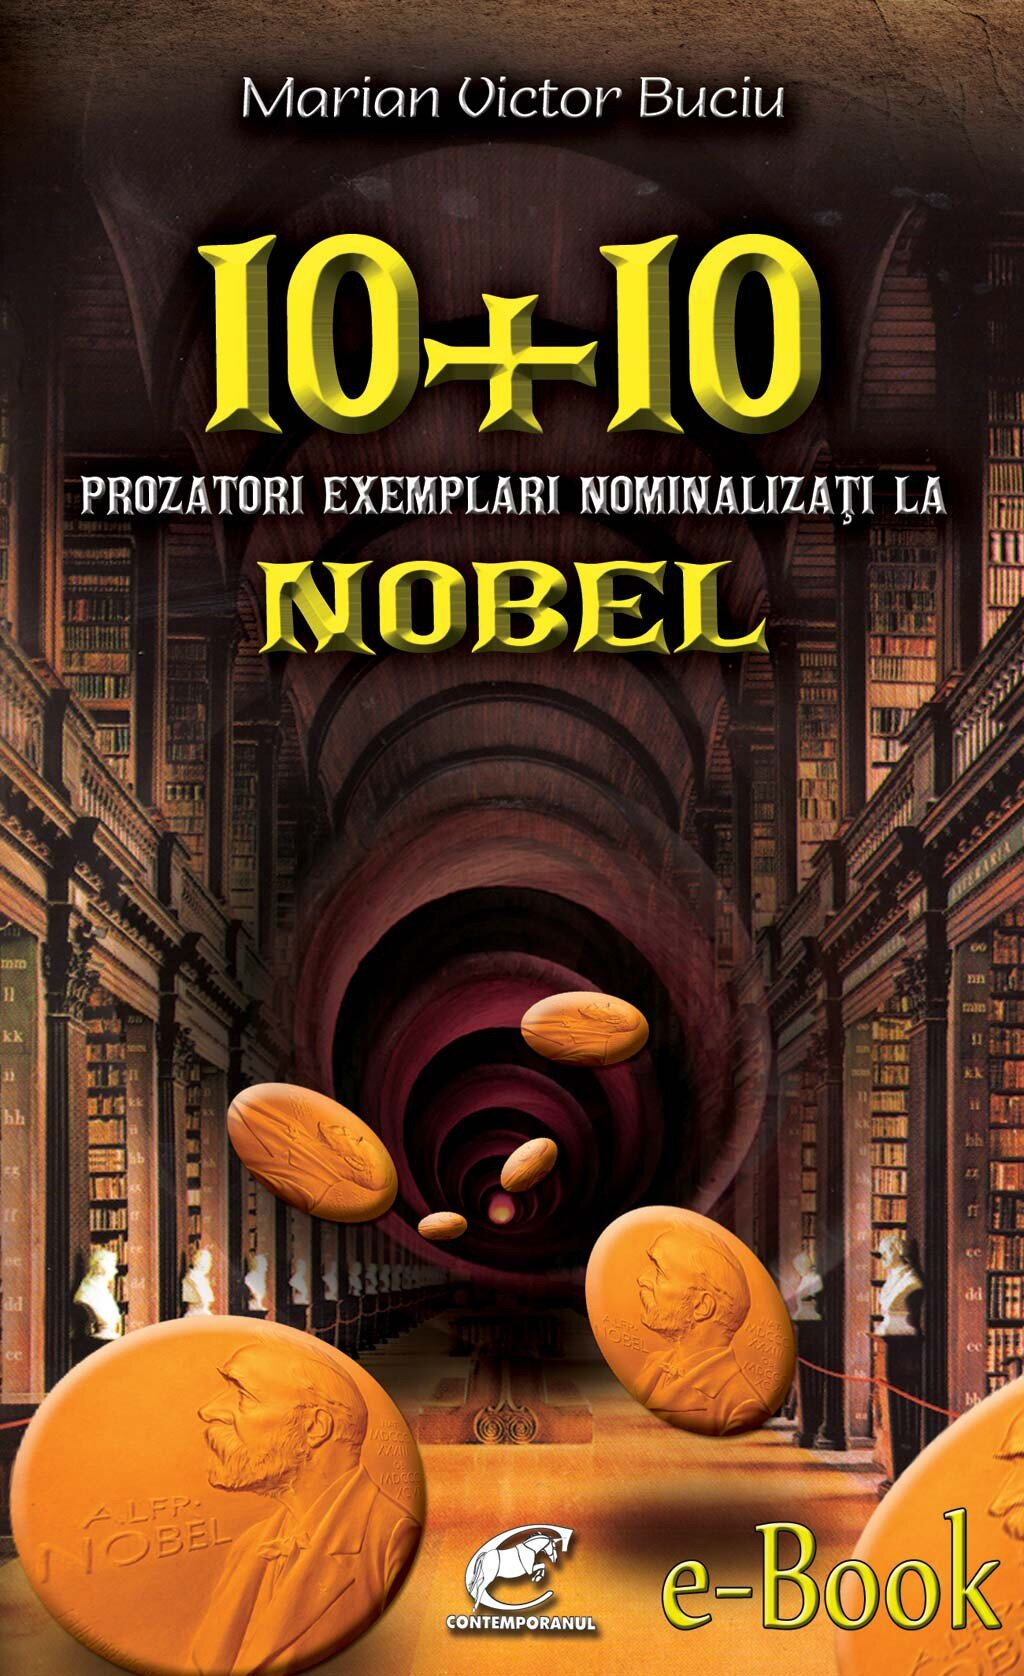 10 plus 10 prozatori exemplari nominalizati la Nobel (eBook)